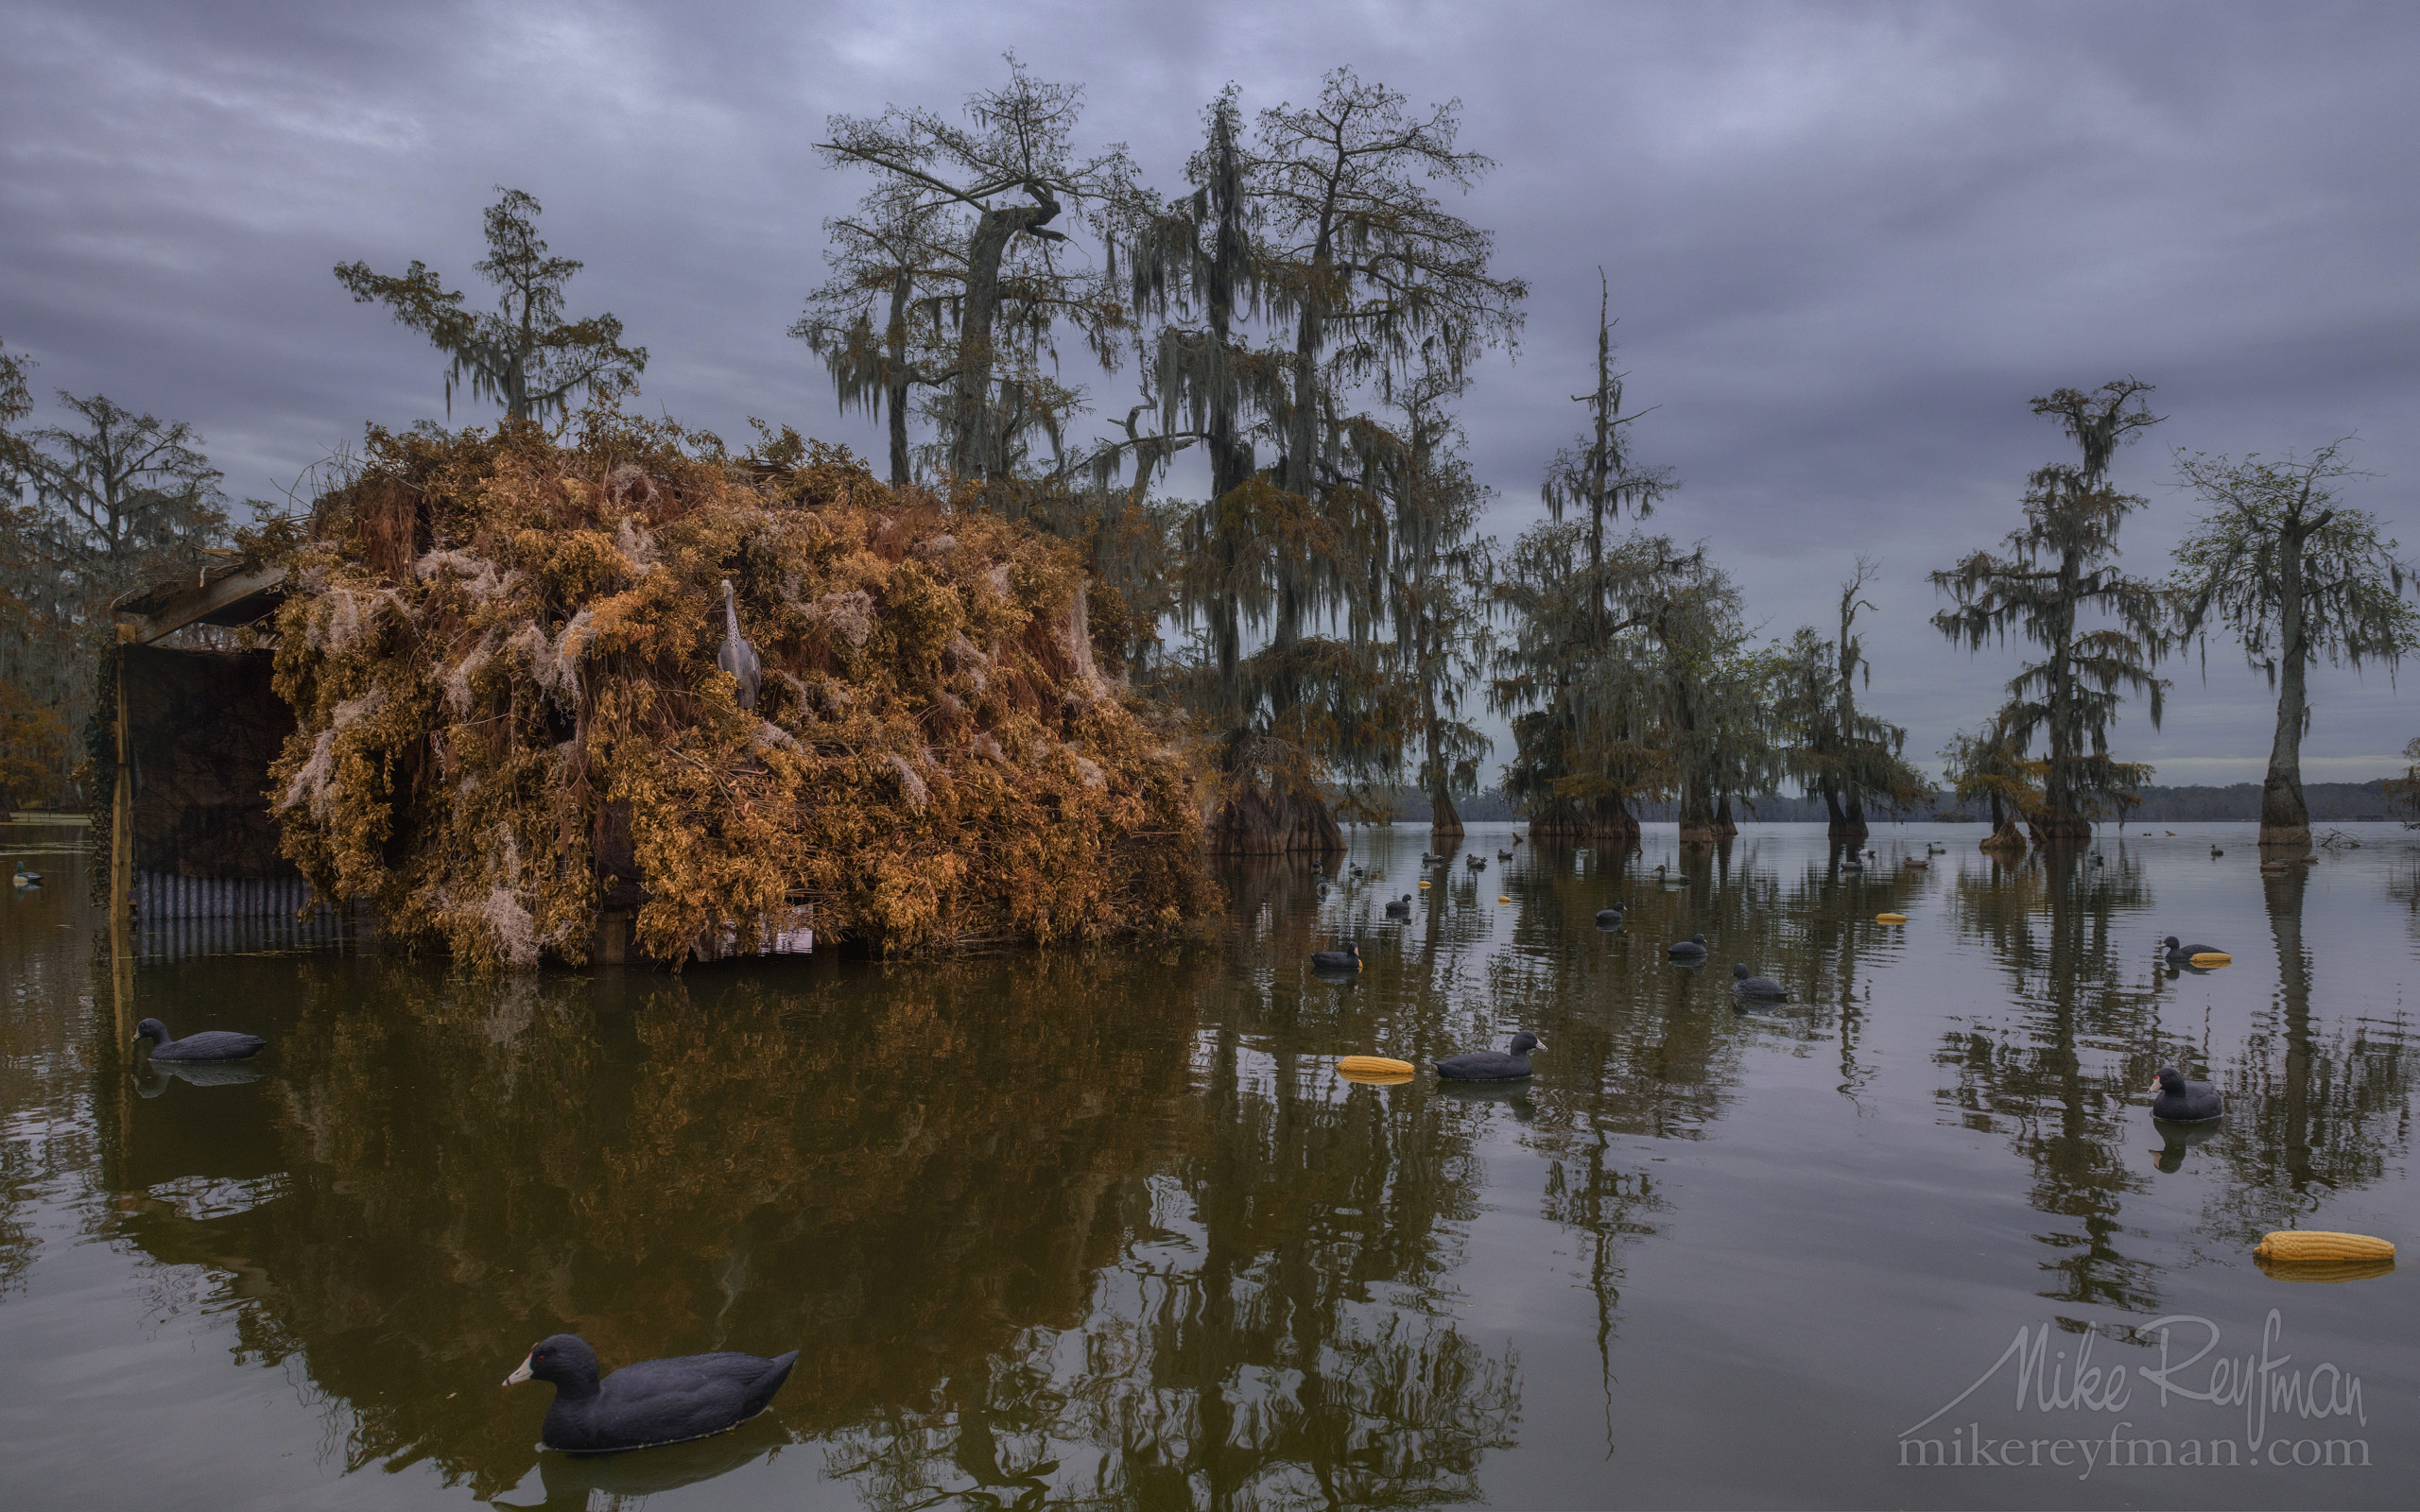 Hunting blind and duck decoys. Lake Martin, Louisiana, US 087-LT1-50A2481.jpg - Bold Cypress and Tupelo Trees in the swamps of Atchafalaya River Basin. Caddo, Martin and Fousse Lakes. Texas/Louisiana, USA. - Mike Reyfman Photography